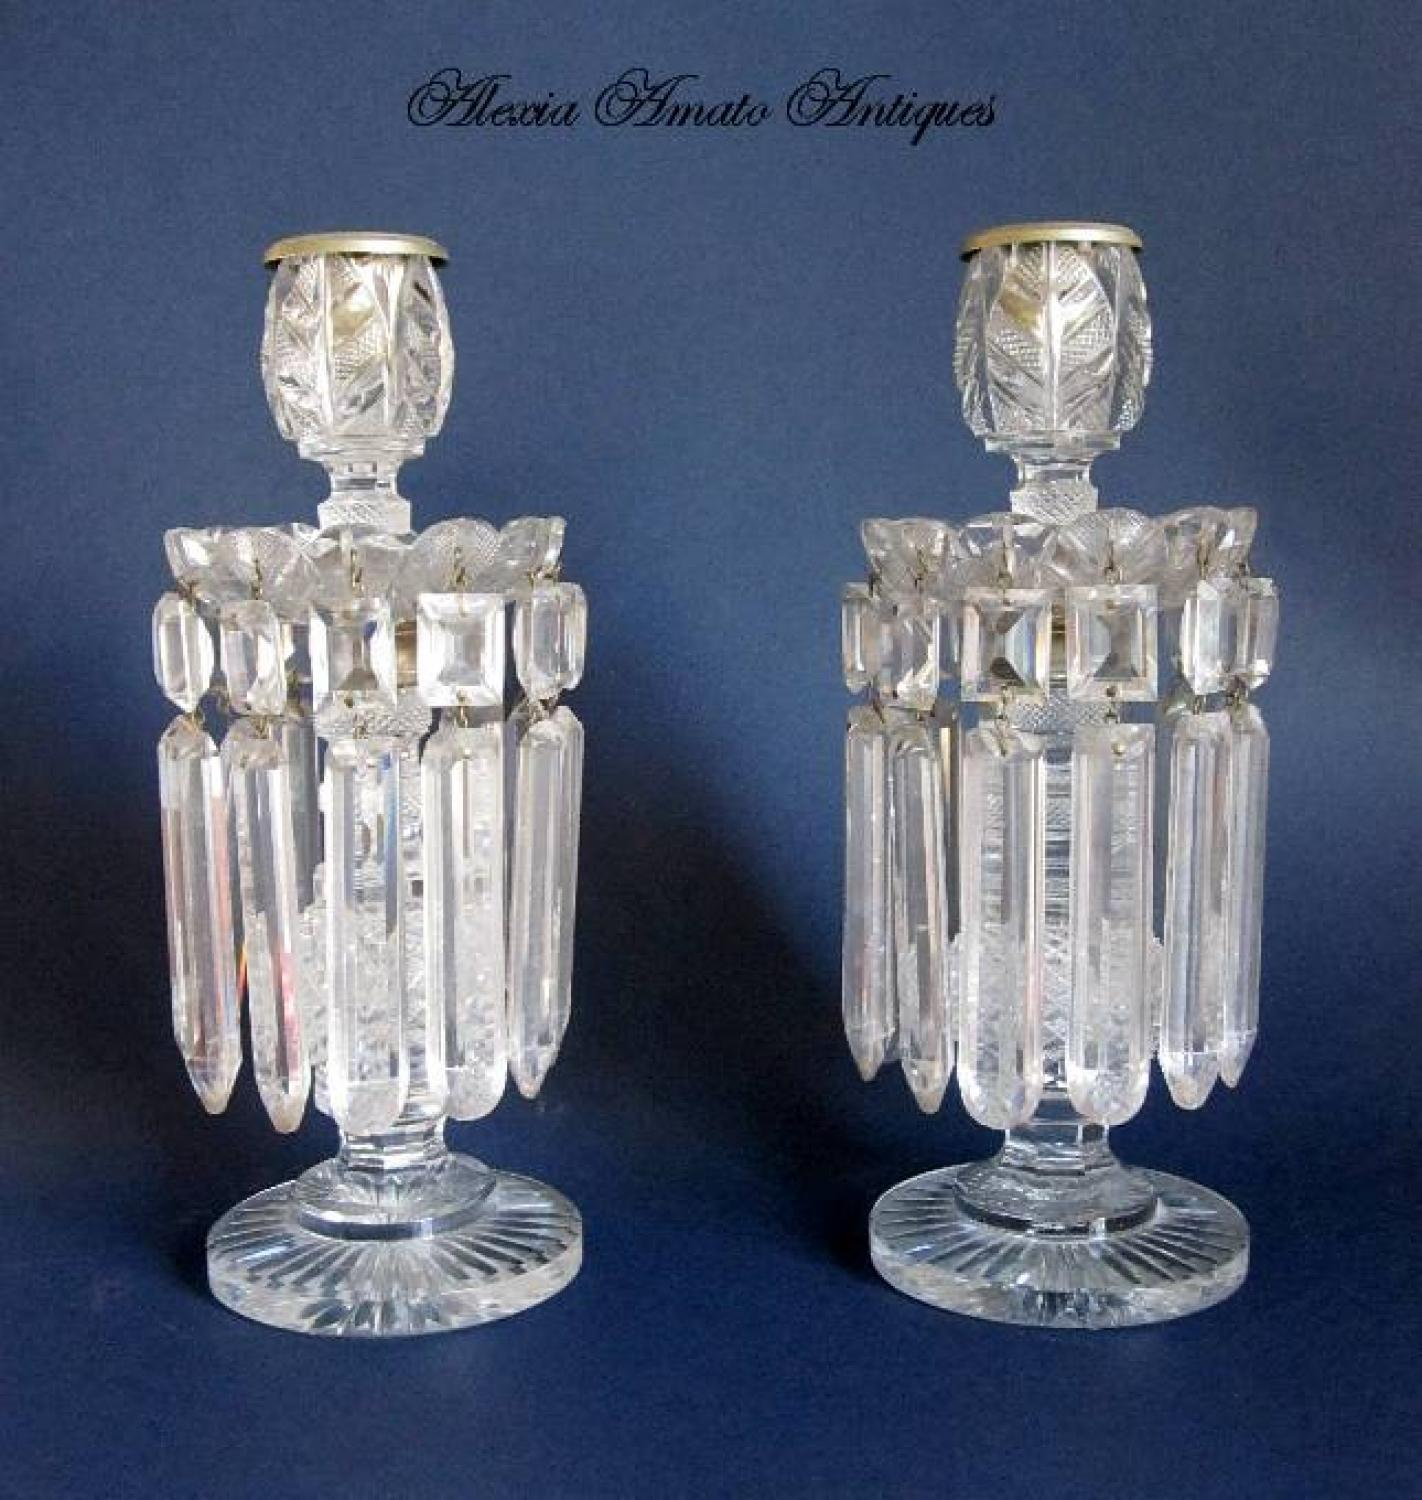 High Quality BACCARAT Cut Crystal Lustres